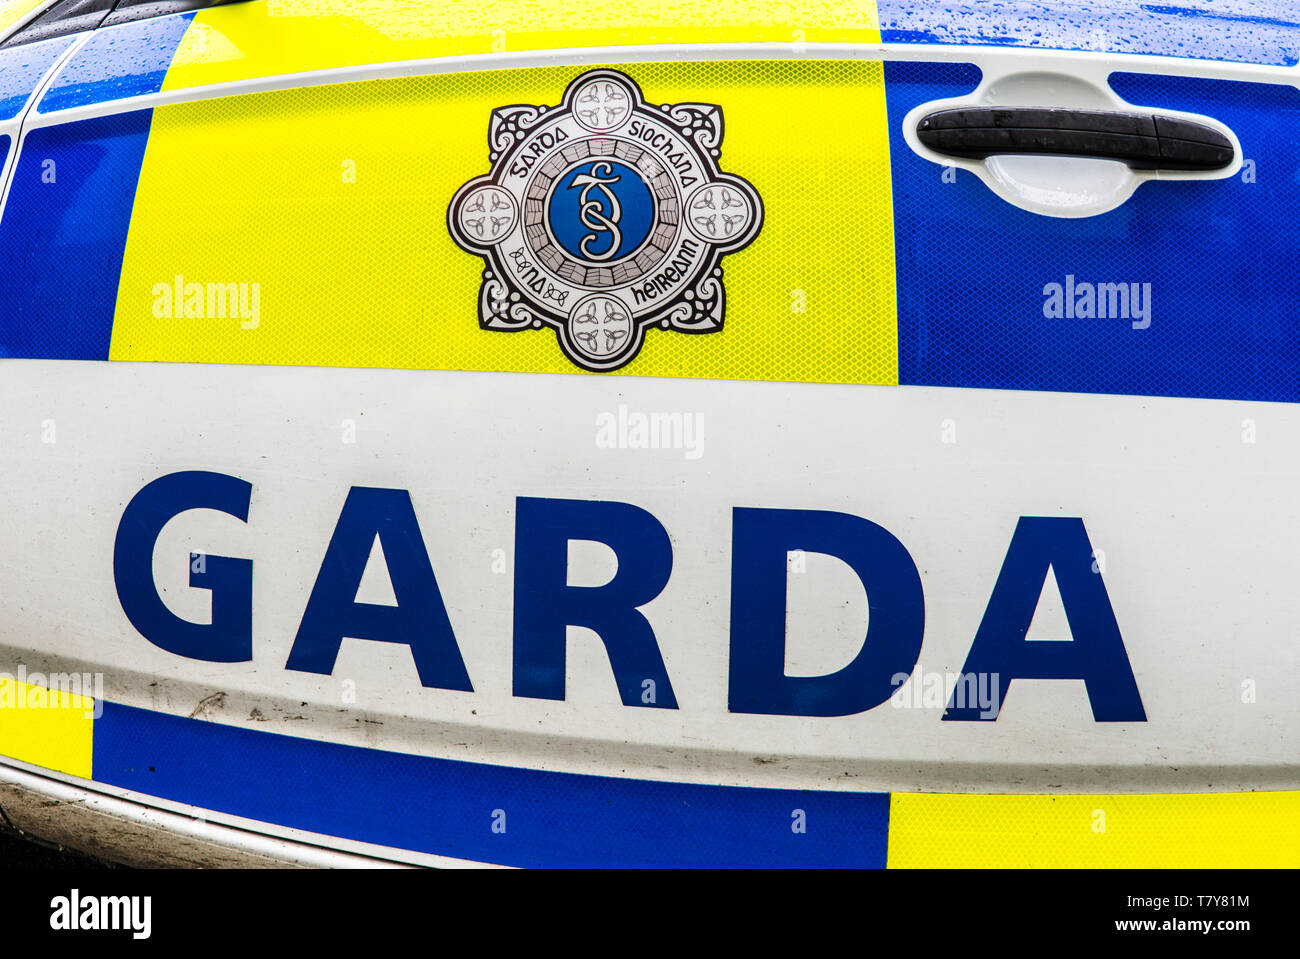 A car from Garda National Roads Policing Bureau or GNRPB. The roads policing unit of the Garda Síochána. Prior to 2018, it was known as the Garda Traf - Stock Image